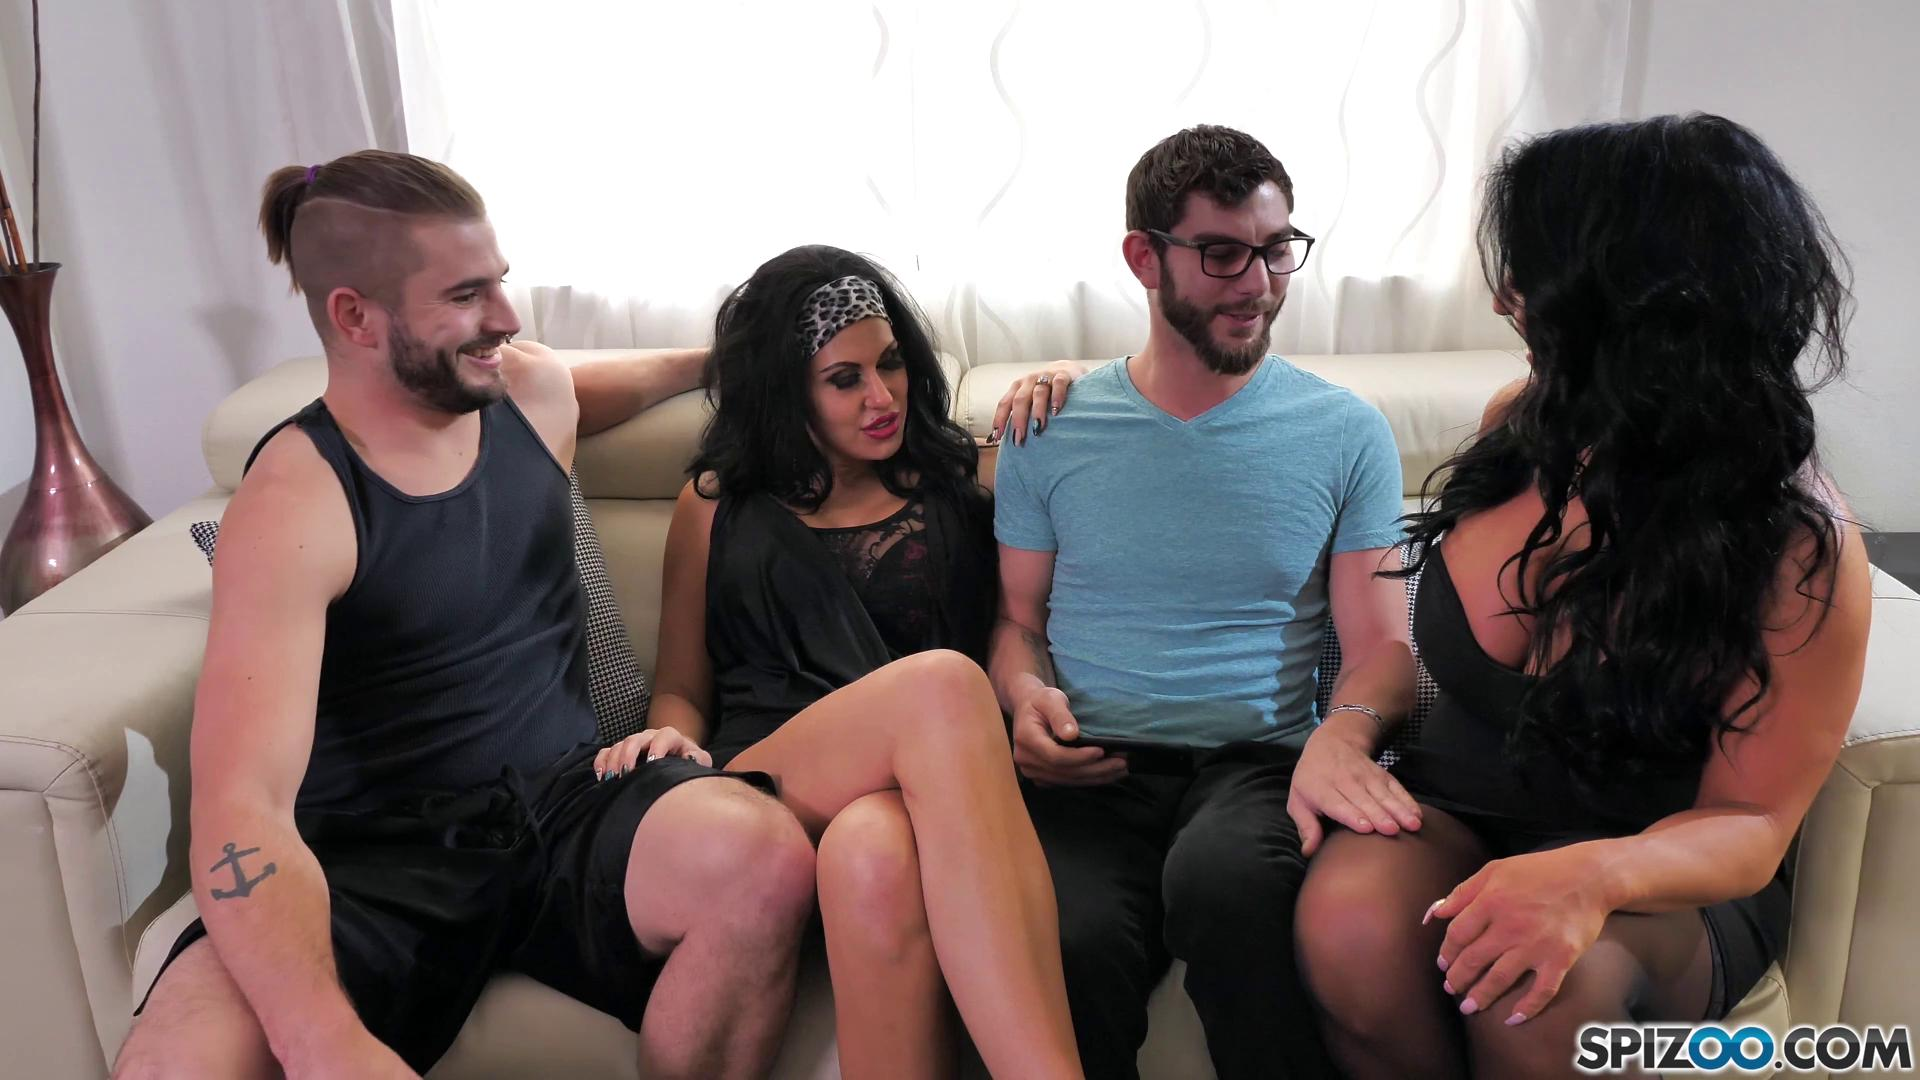 Spizoo – Raven Hart And Savana Styles The Party Family